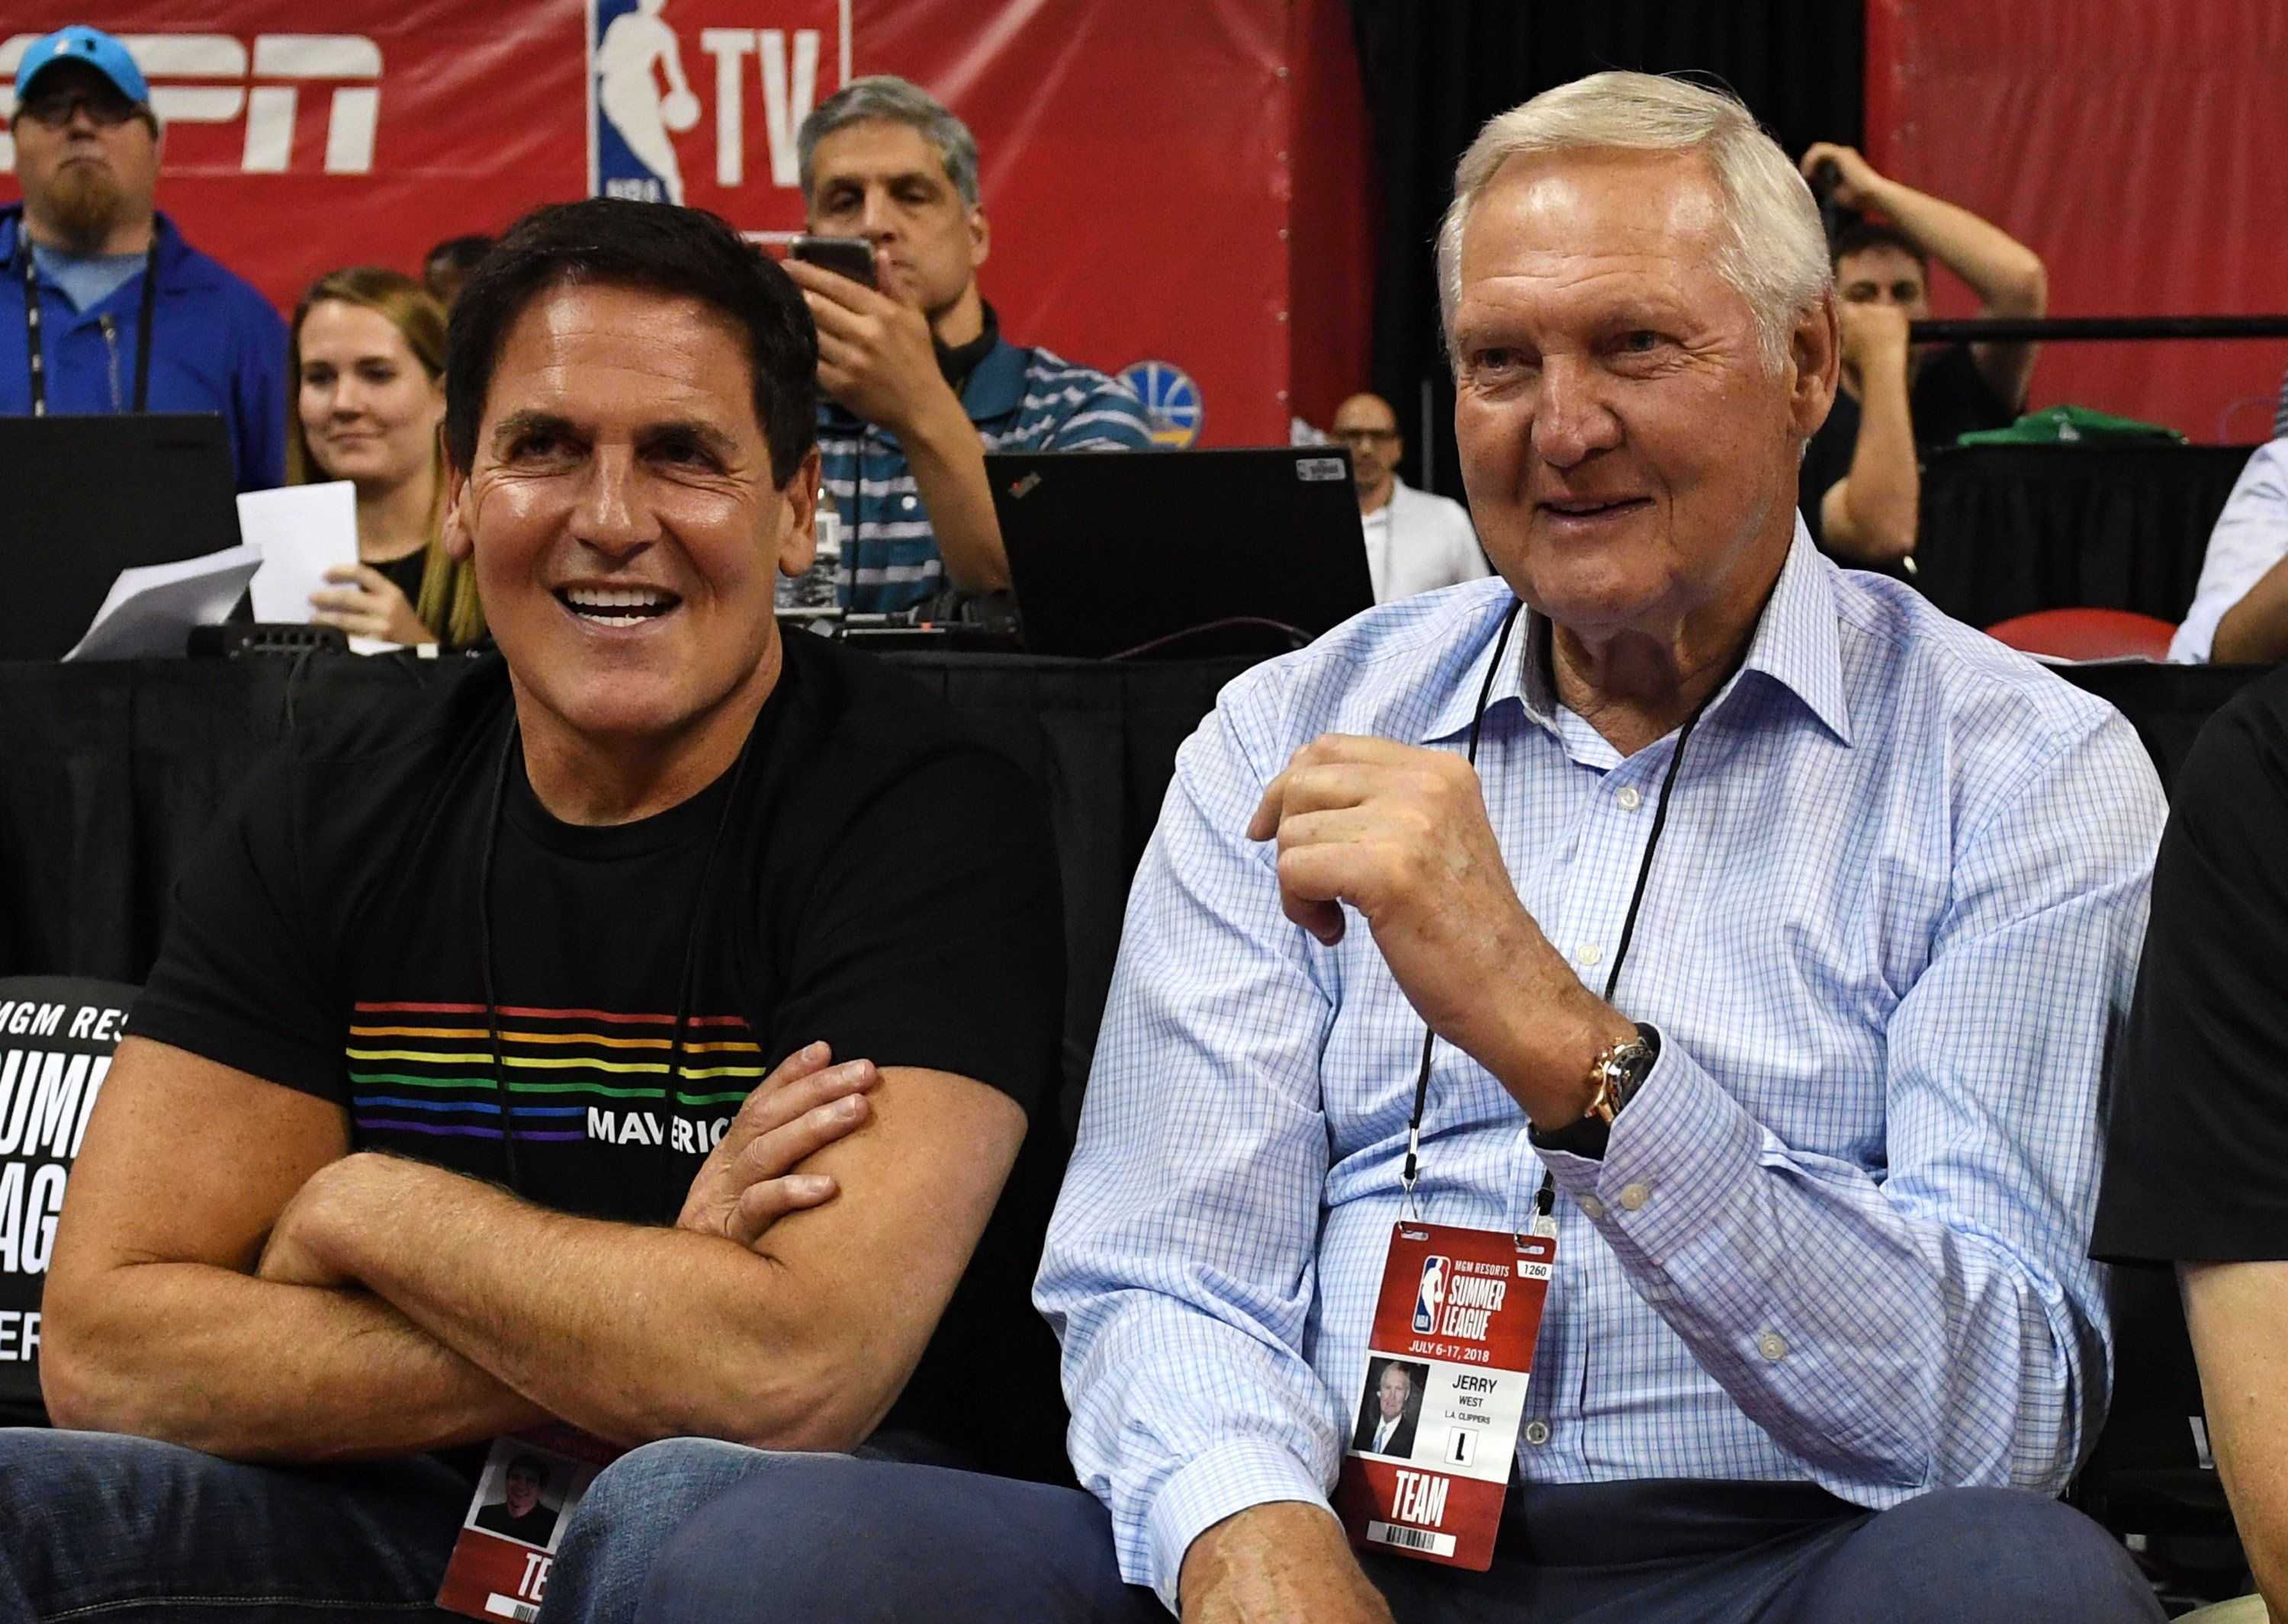 LAS VEGAS, NV - JULY 06:  Dallas Mavericks owner Mark Cuban (L) and Los Angeles Clippers executive board member Jerry West talk as they watch a 2018 NBA Summer League game between the Mavericks and the Phoenix Suns at the Thomas & Mack Center on July 6, 2018 in Las Vegas, Nevada. The Suns defeated the Mavericks 92-85. NOTE TO USER: User expressly acknowledges and agrees that, by downloading and or using this photograph, User is consenting to the terms and conditions of the Getty Images License Agreement.  (Photo by Ethan Miller/Getty Images)